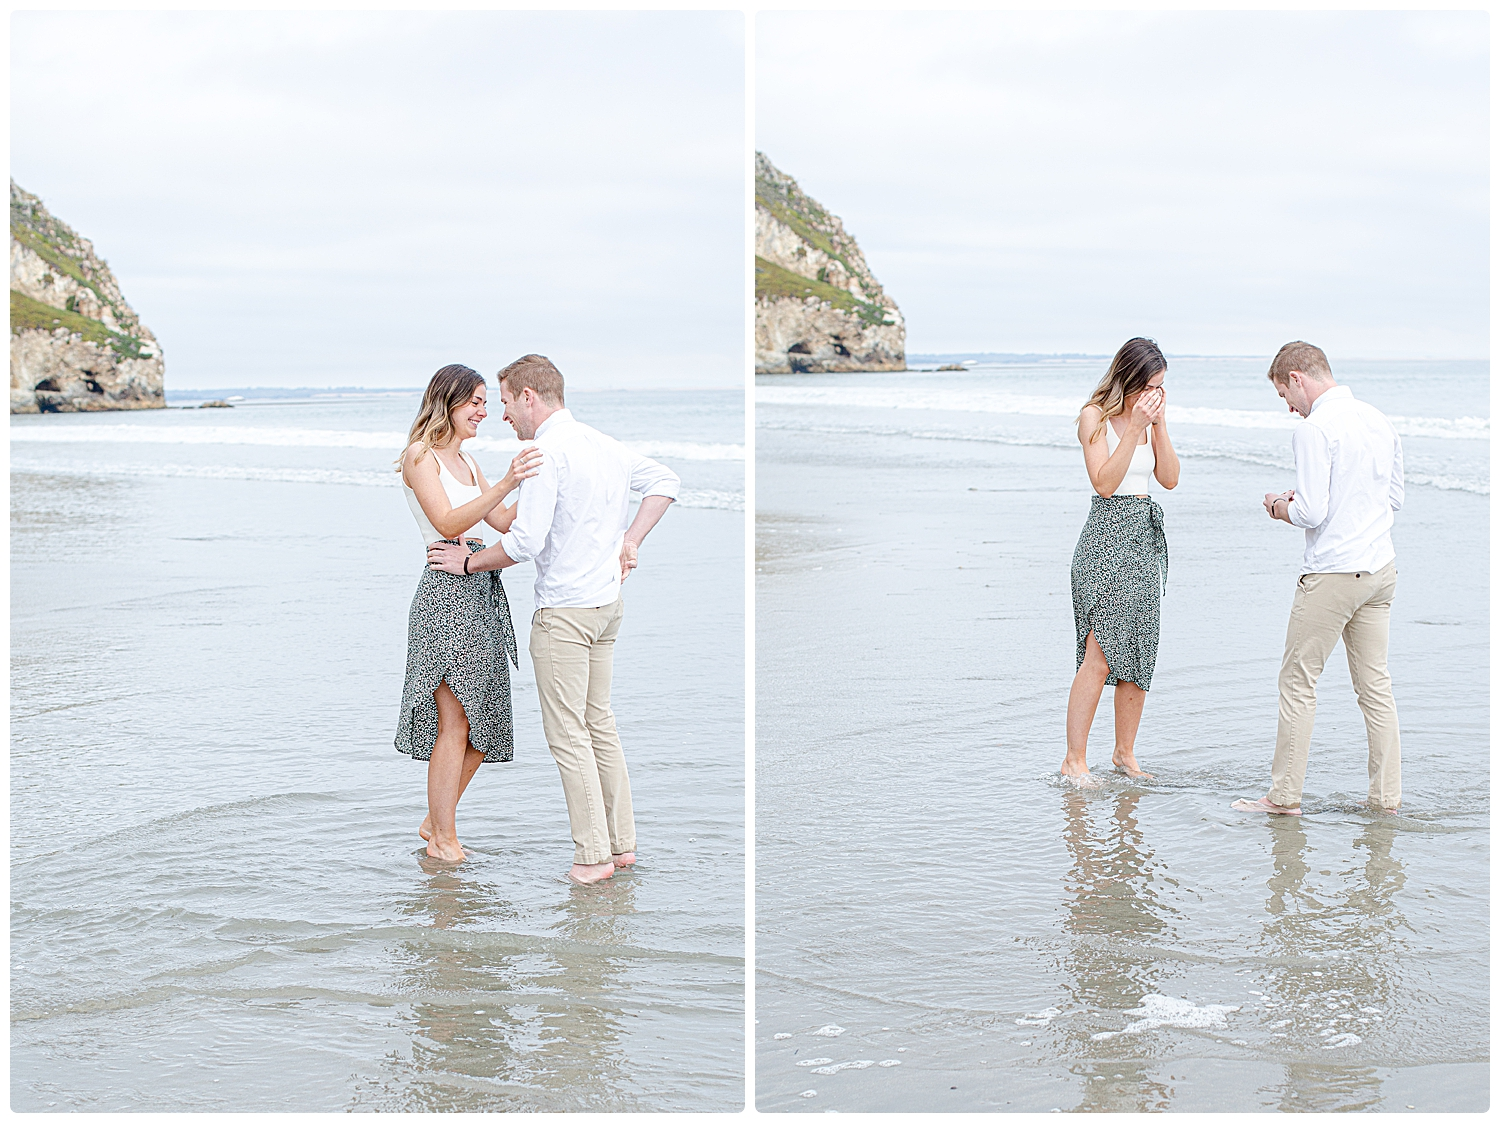 061919_EthanEmma_proposal_Renoda Campbell Photography-7093.jpg